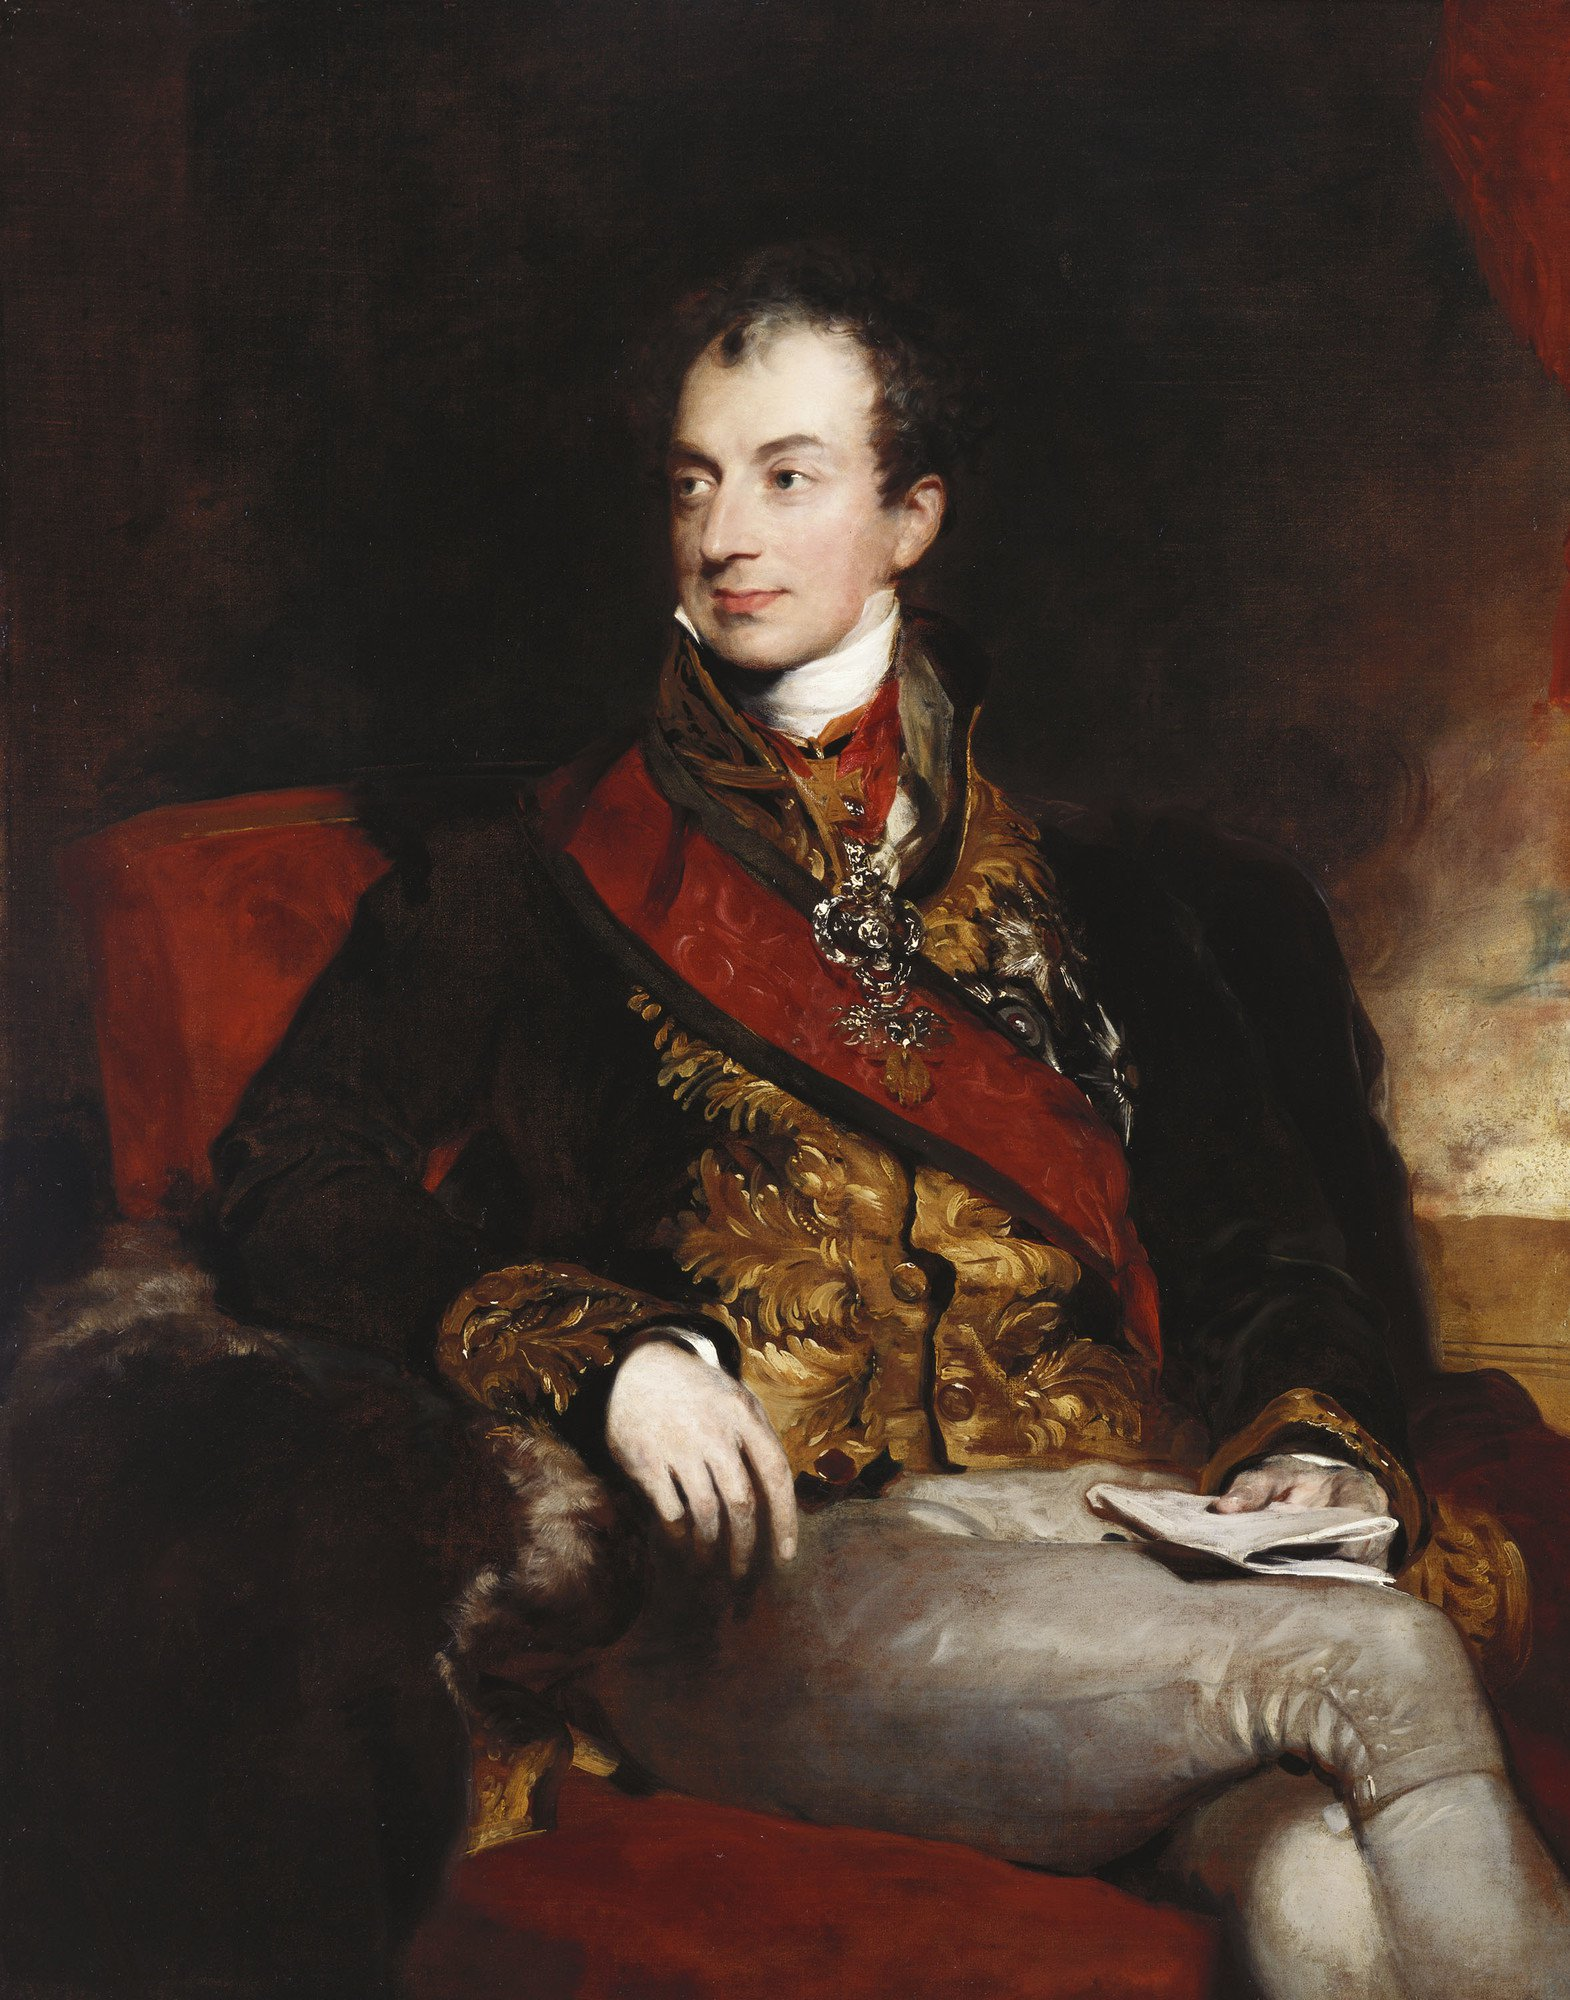 Thomas Lawrence (1769–1830):  Portrait of Prince Klemens Wenzel von Metternich, German-Austrian diplomat, politician and statesman (1773-1859).